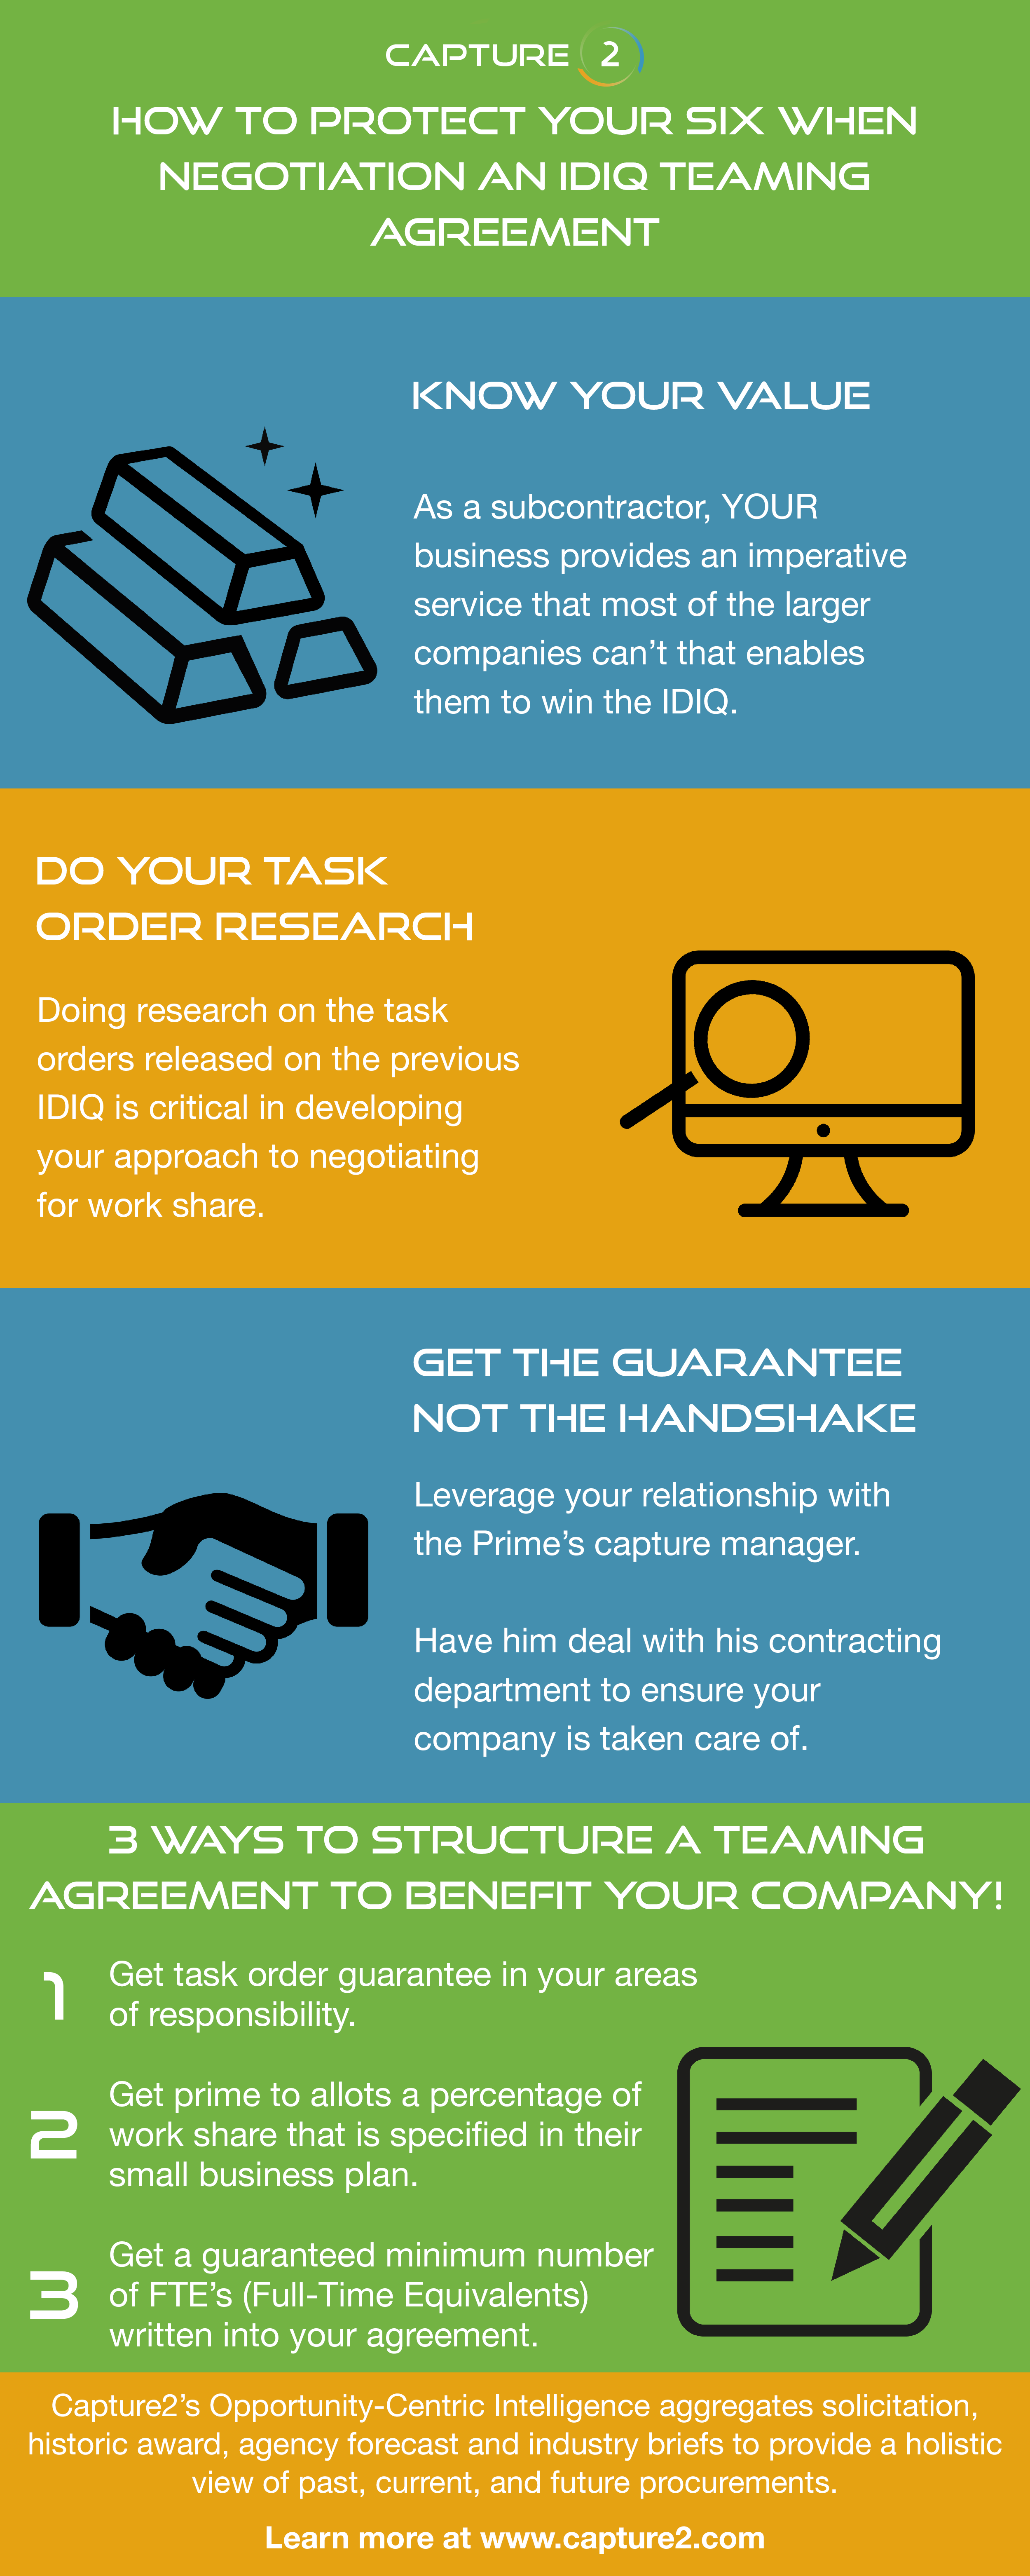 How To Protect Your Six When Negotiating An Idiq Teaming Agreements